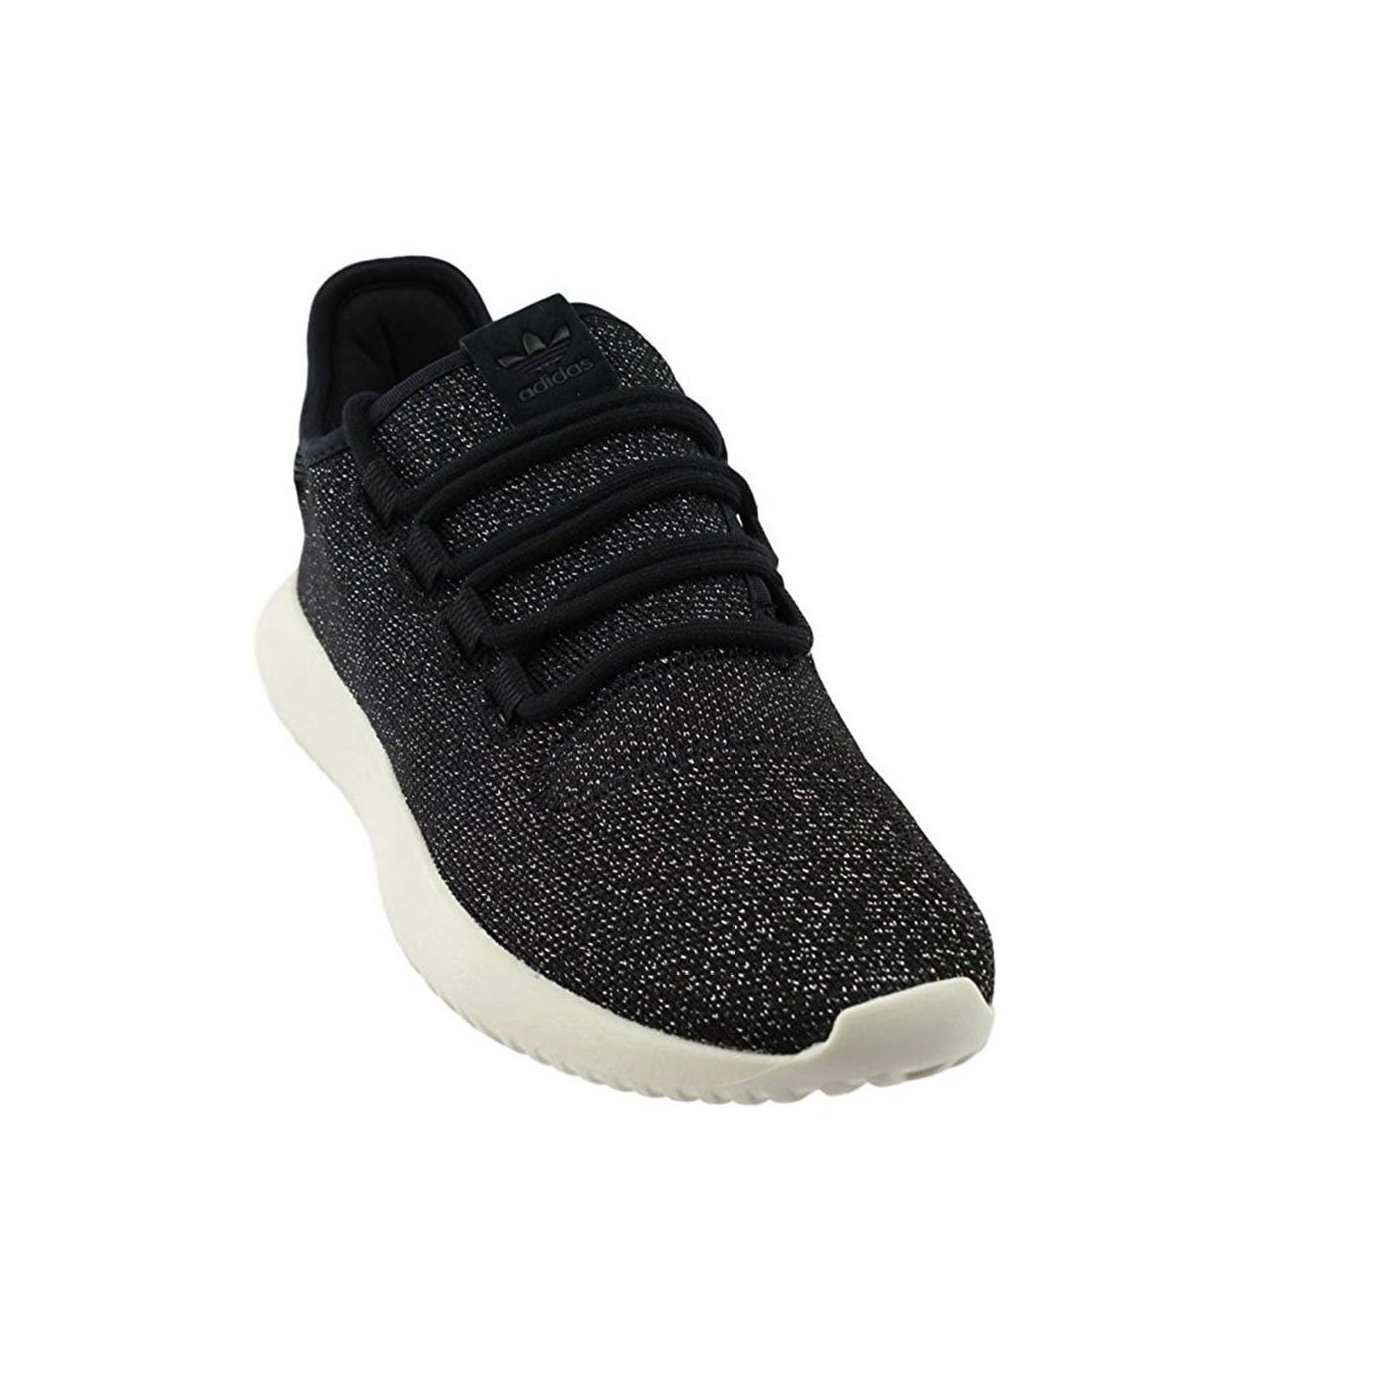 adidas Originals Women's Tubular Shadow W Fashion Sneaker B06XX4PSF5 10.5 B(M) US|St Major/Black/Off White